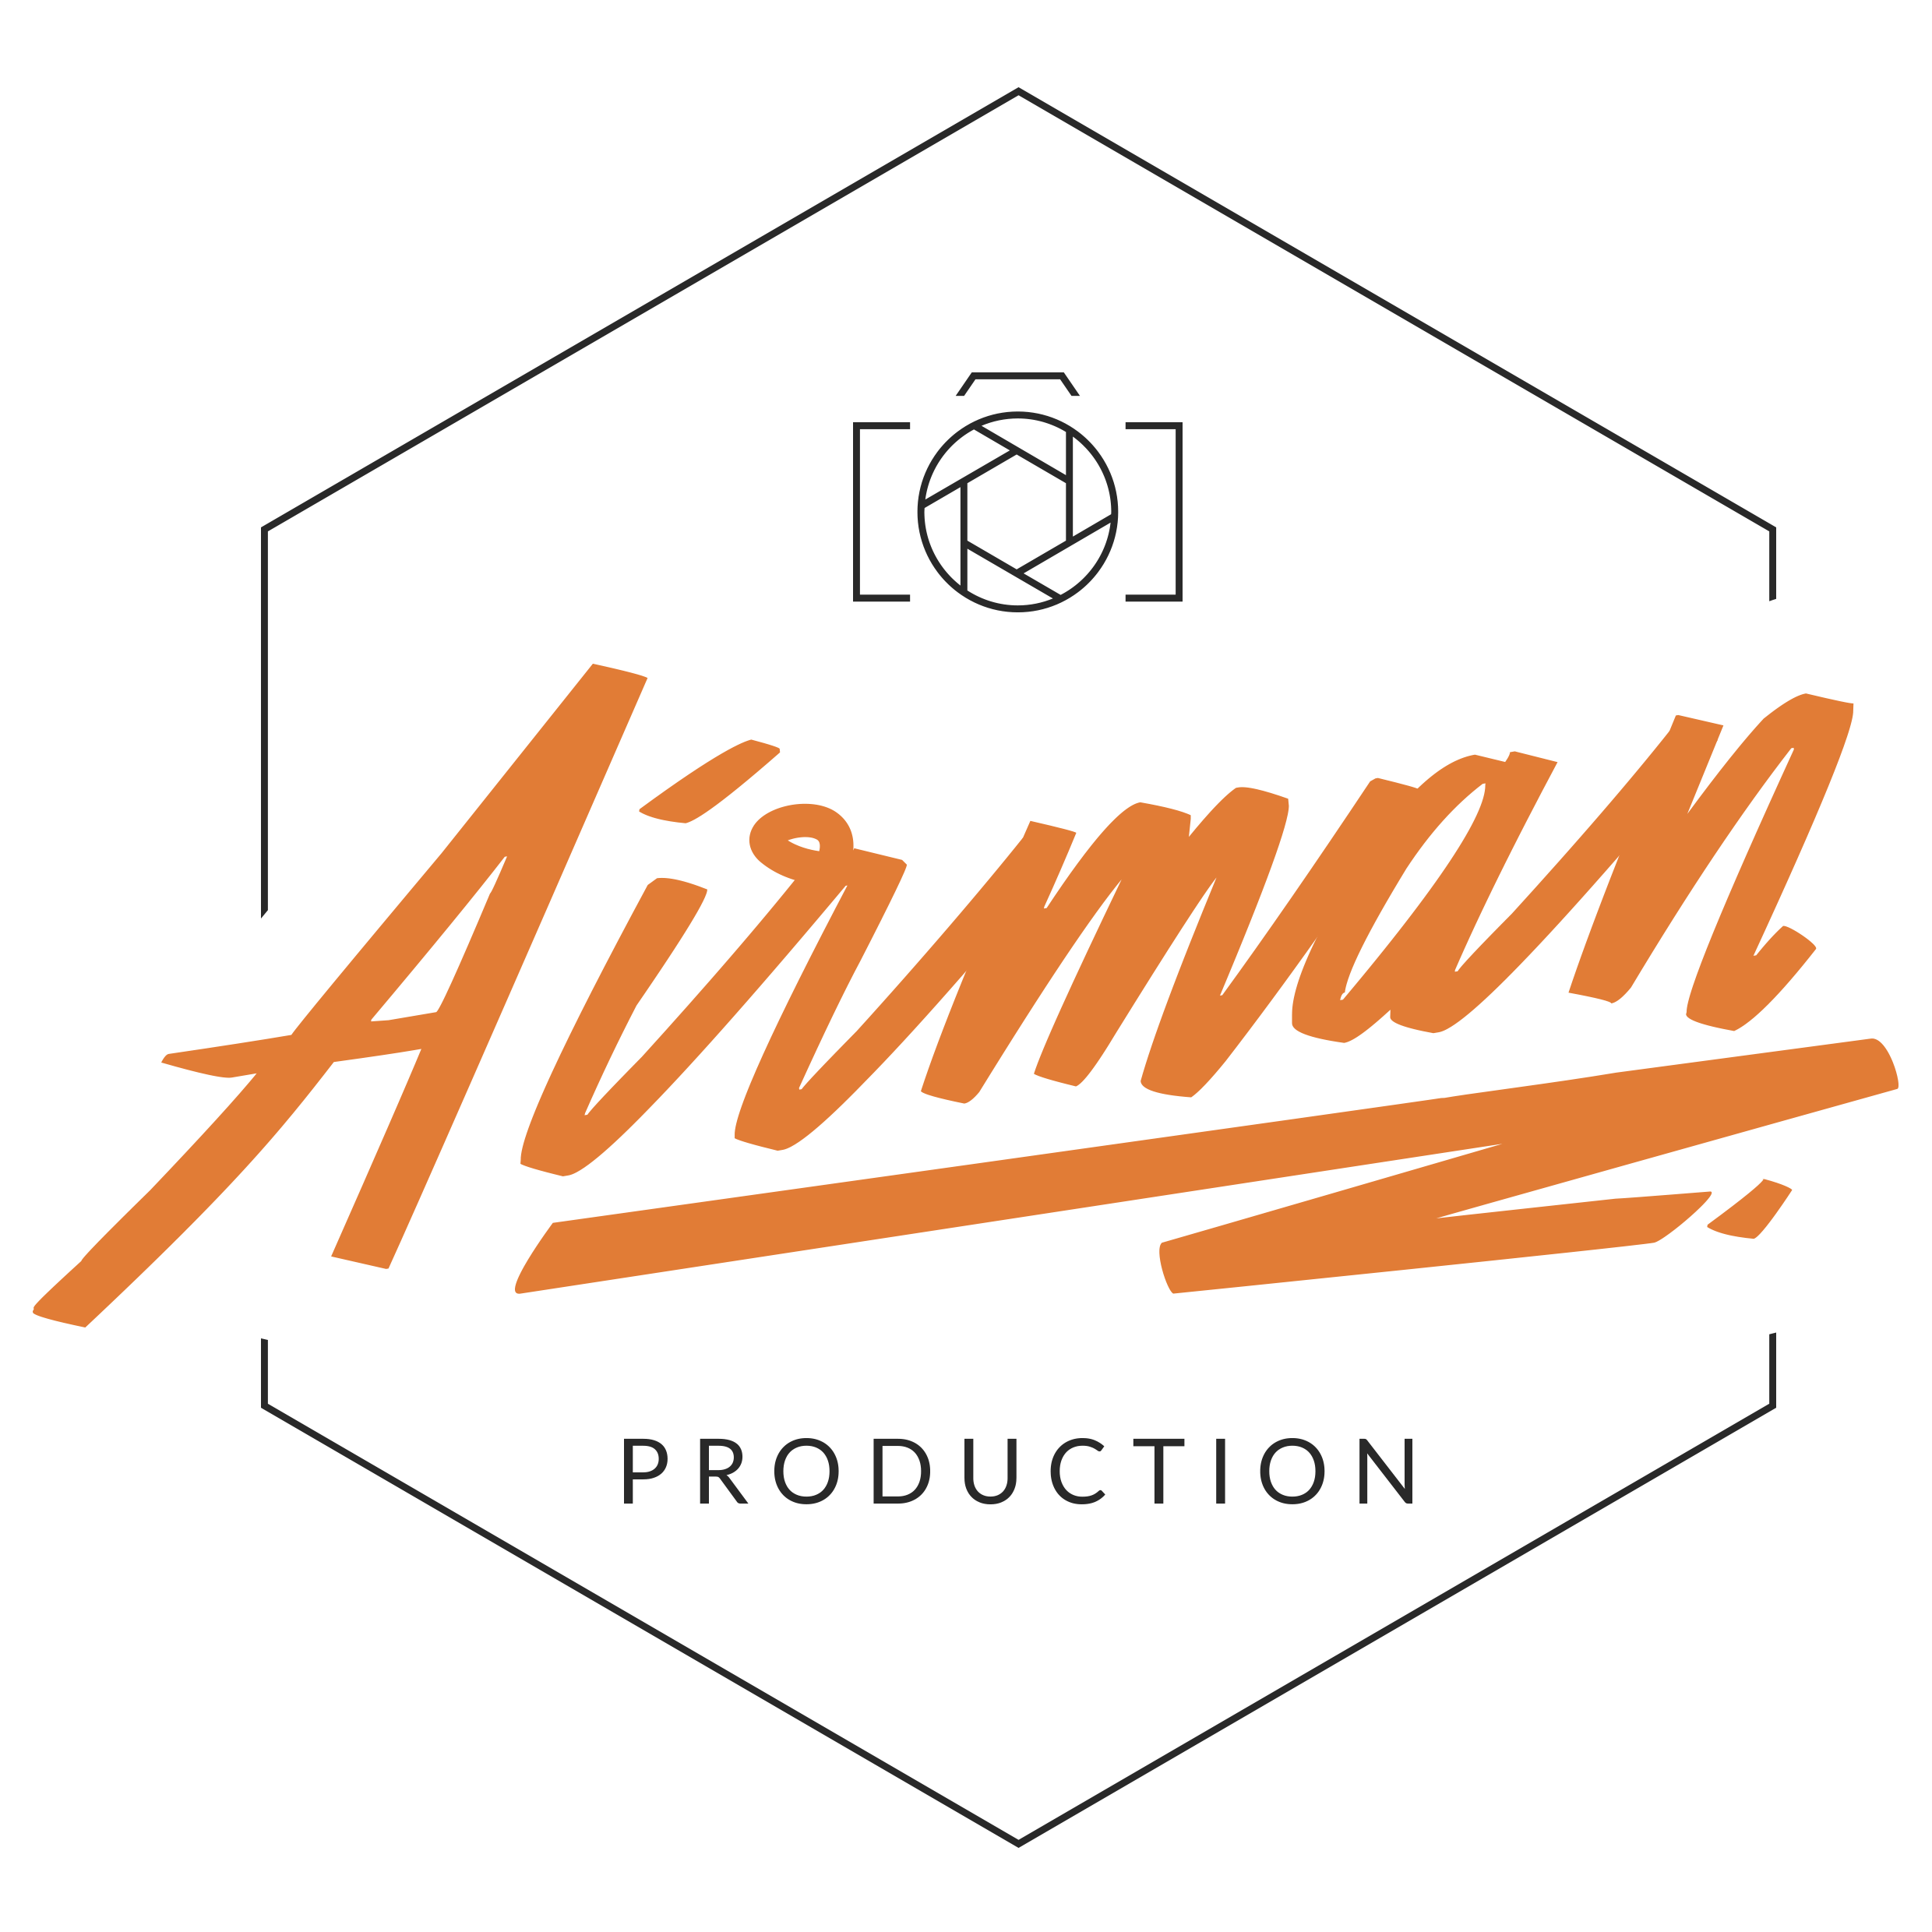 AIRMAN PRODUCTION | CATALIN MUNTEAN PHOTOGRAPHER | DIGITAL AGENCY